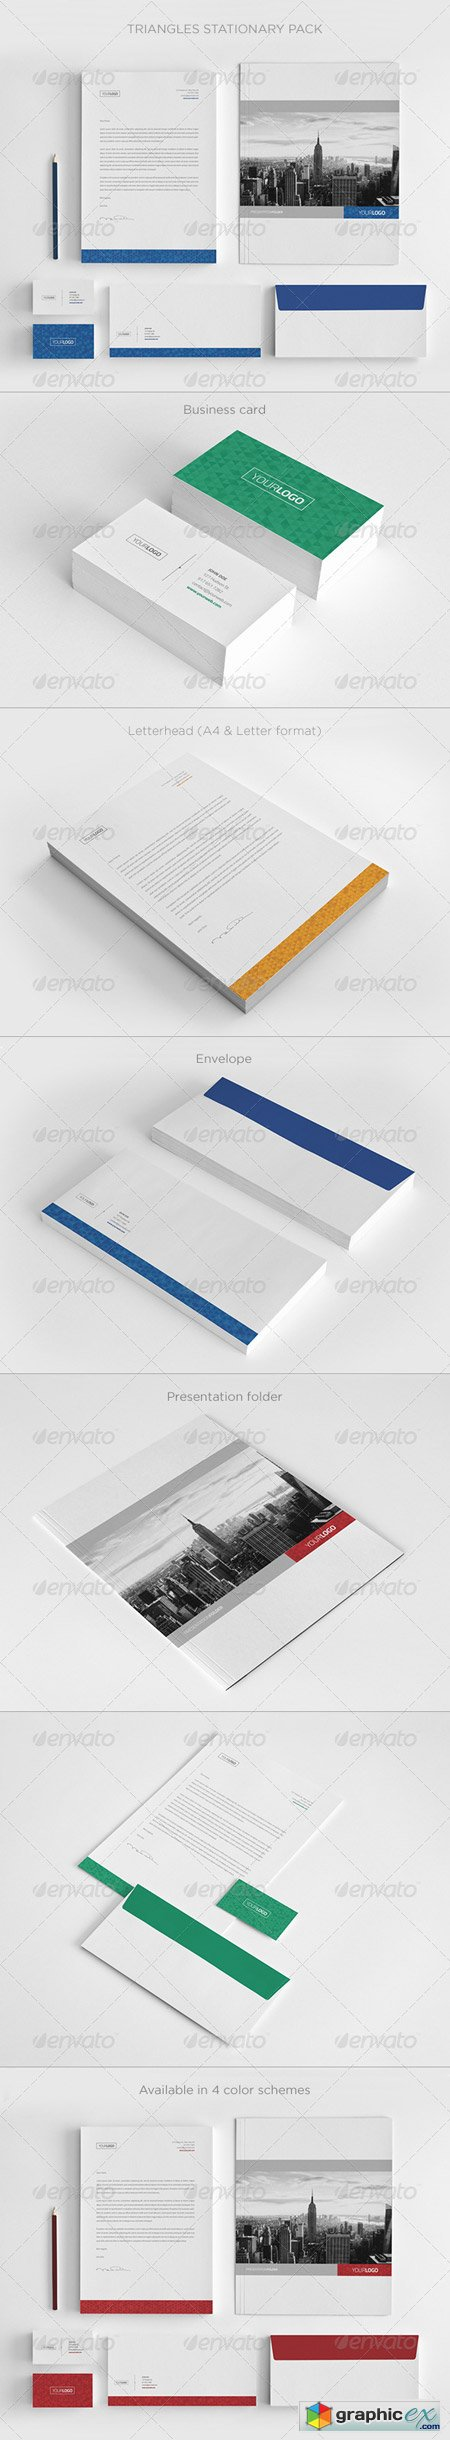 Real Estate Stationary Pack